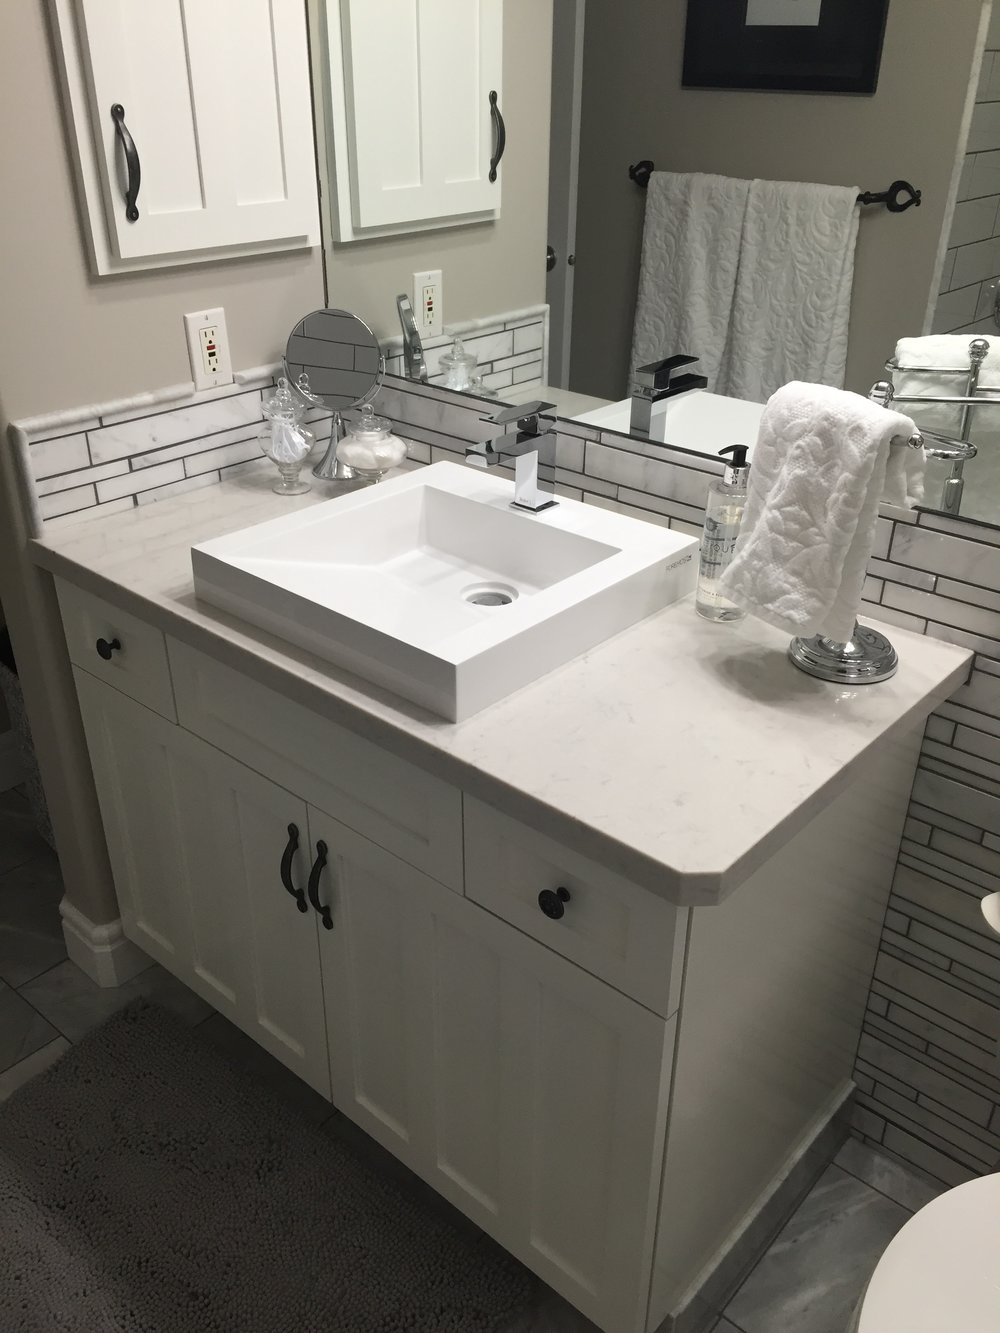 painted white cabinets, white quartz countertop, marble mosaics.